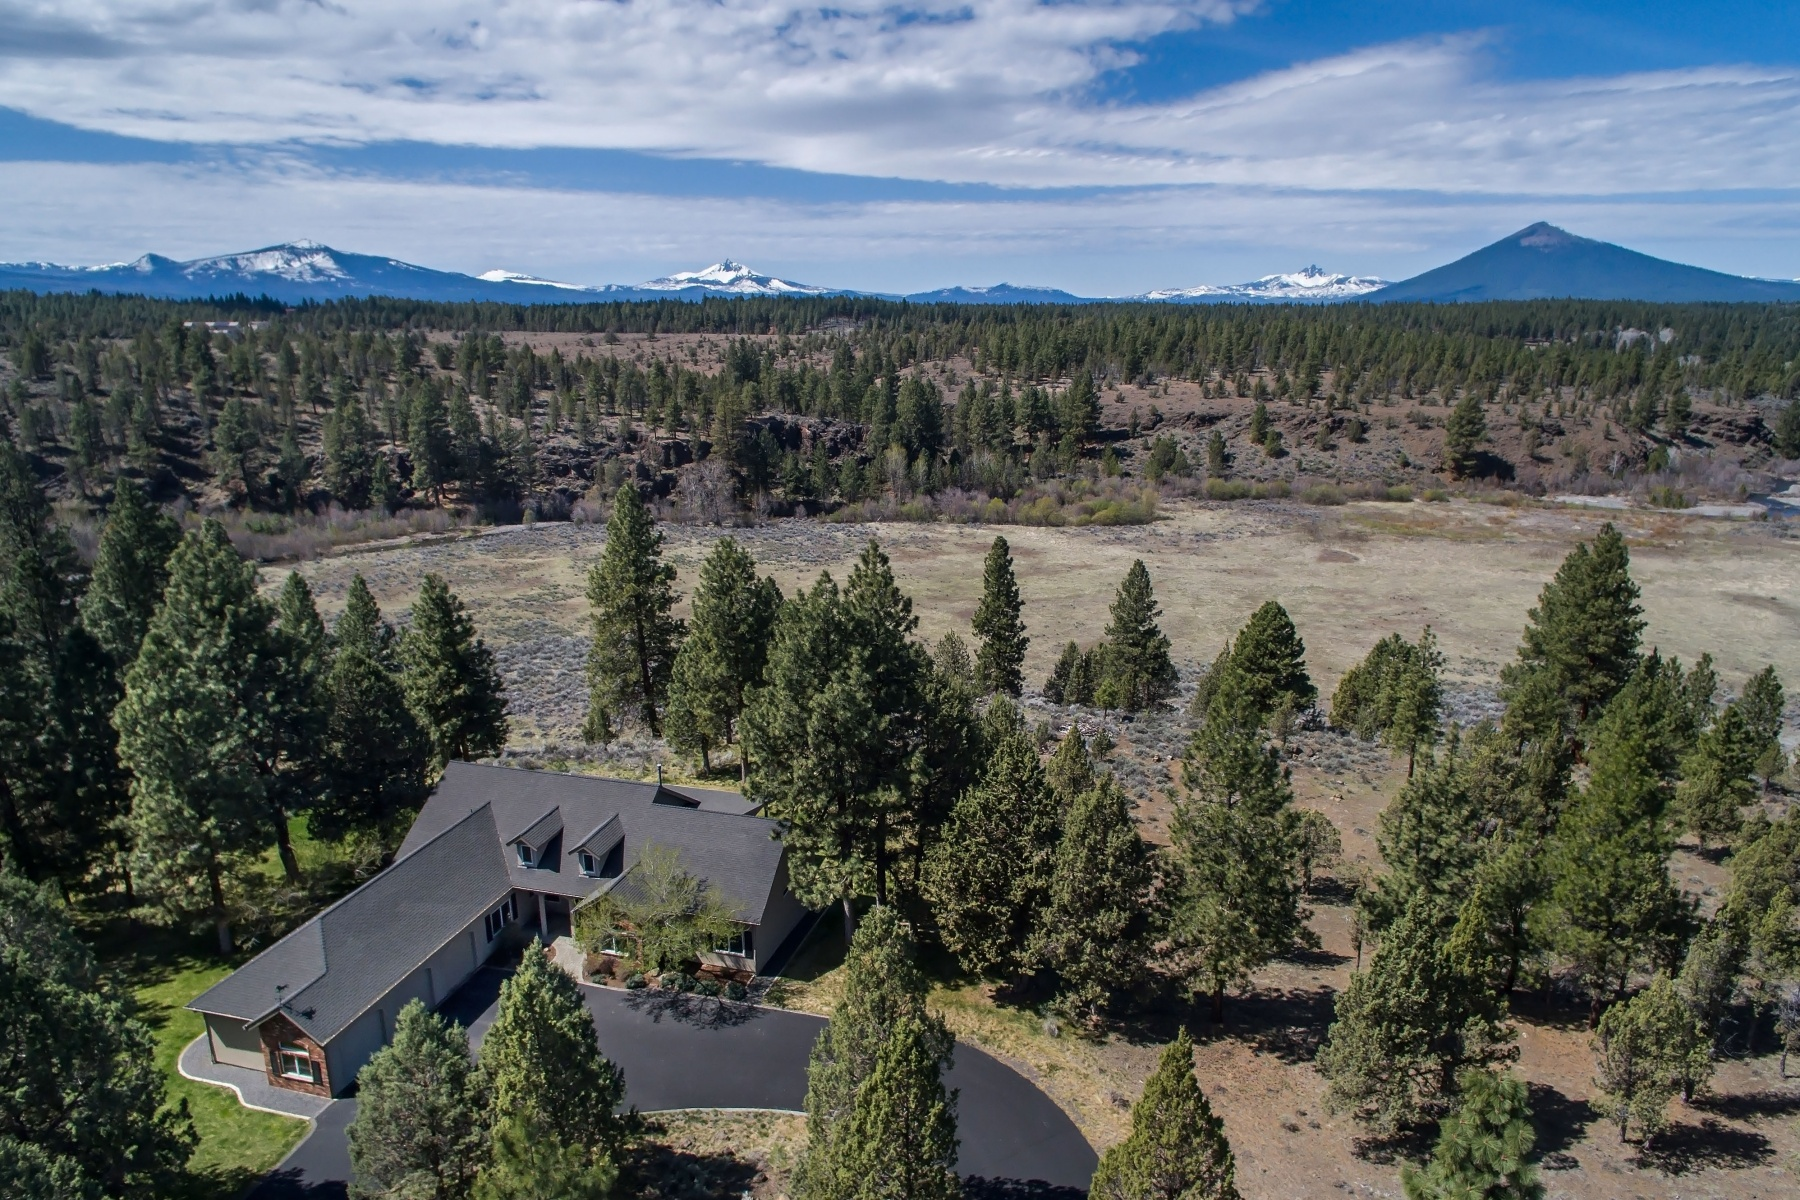 Single Family Home for Sale at One-of-a-kind Setting in Sisters 69225 Hawksflight Dr Sisters, Oregon, 97759 United States